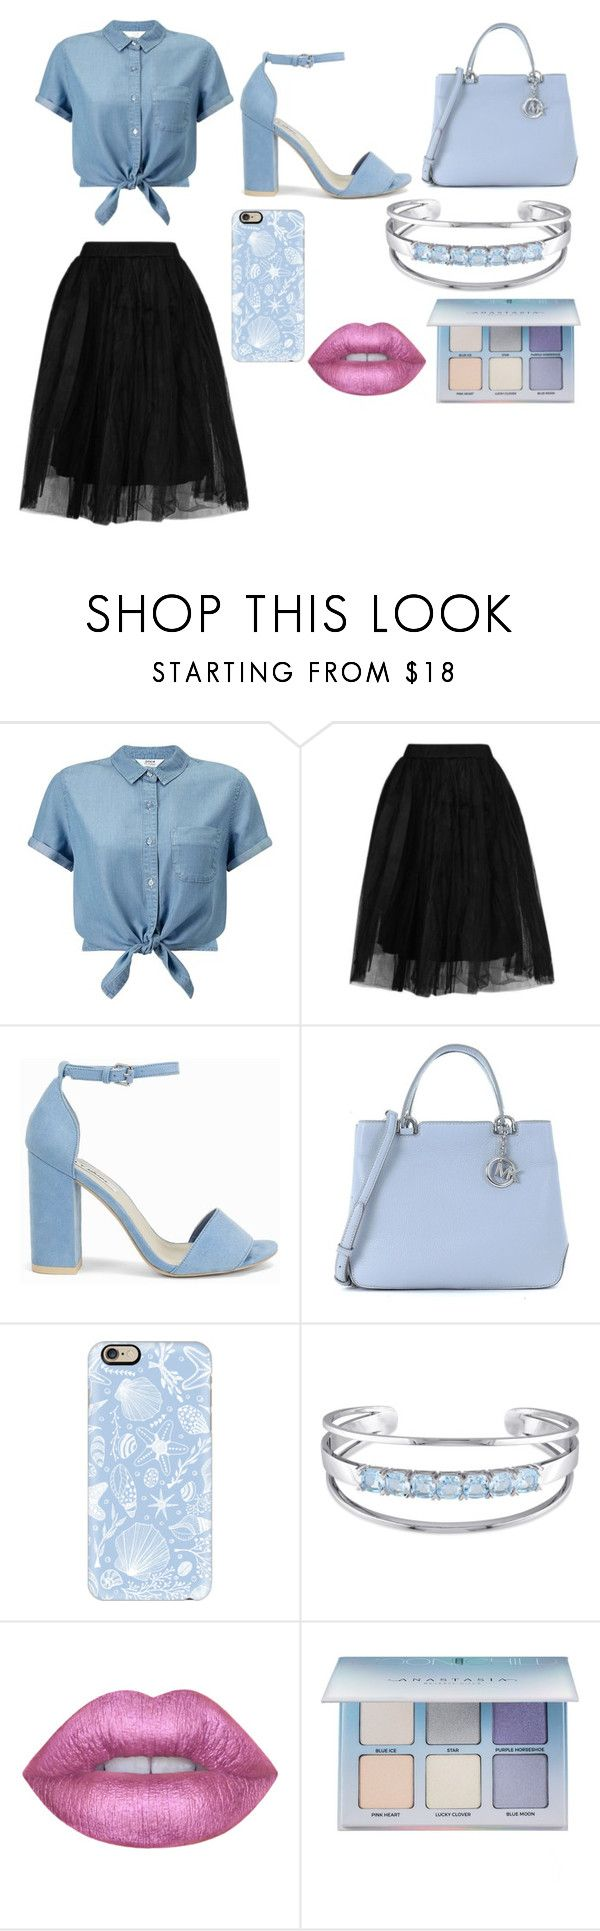 """""""Blue"""" by simina650 ❤ liked on Polyvore featuring Miss Selfridge, Topshop, Nly Shoes, Michael Kors, Casetify, Catherine Malandrino, Lime Crime and Anastasia Beverly Hills"""